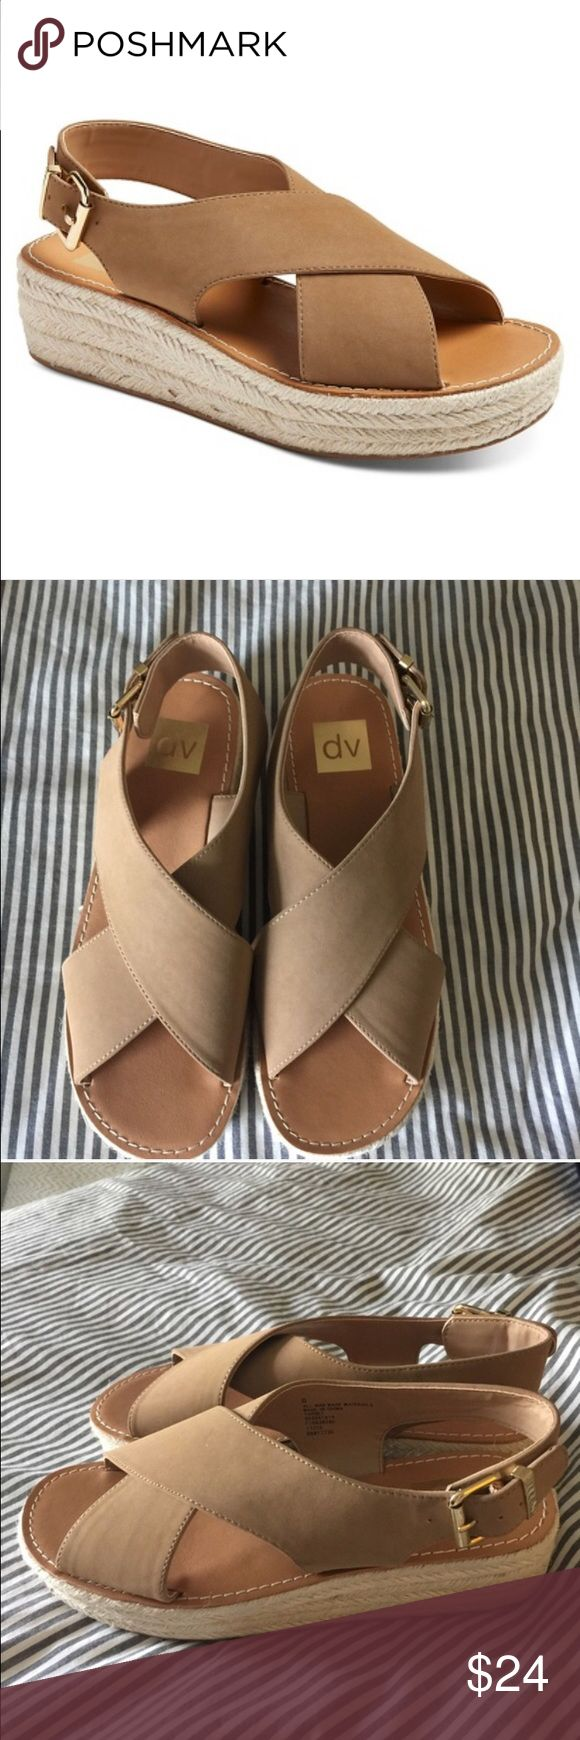 Dolce Vita espadrilles Never worn.  No tags/ No box .. sitting in closet and never got a chance to wear.  So neutral and easy to wear. DV by Dolce Vita Shoes